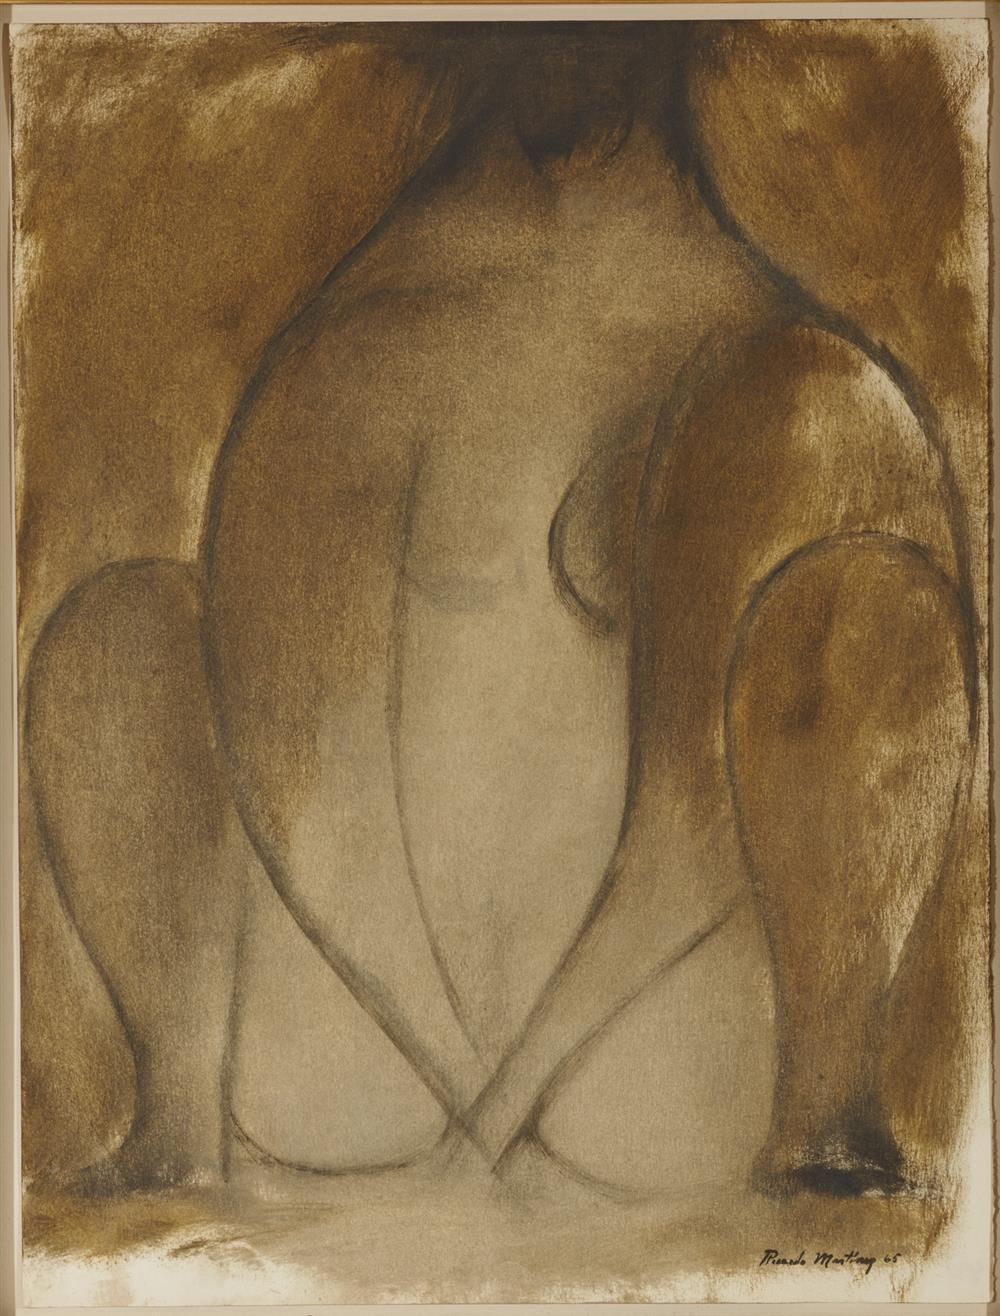 RICARDO MARTINEZ, (Mexican, 1918-2009), Seated Woman #1, 1965, oil on paper, sheet: 22 3/4 x 17 3/8 in., frame: 29 1/2 x 24 in.